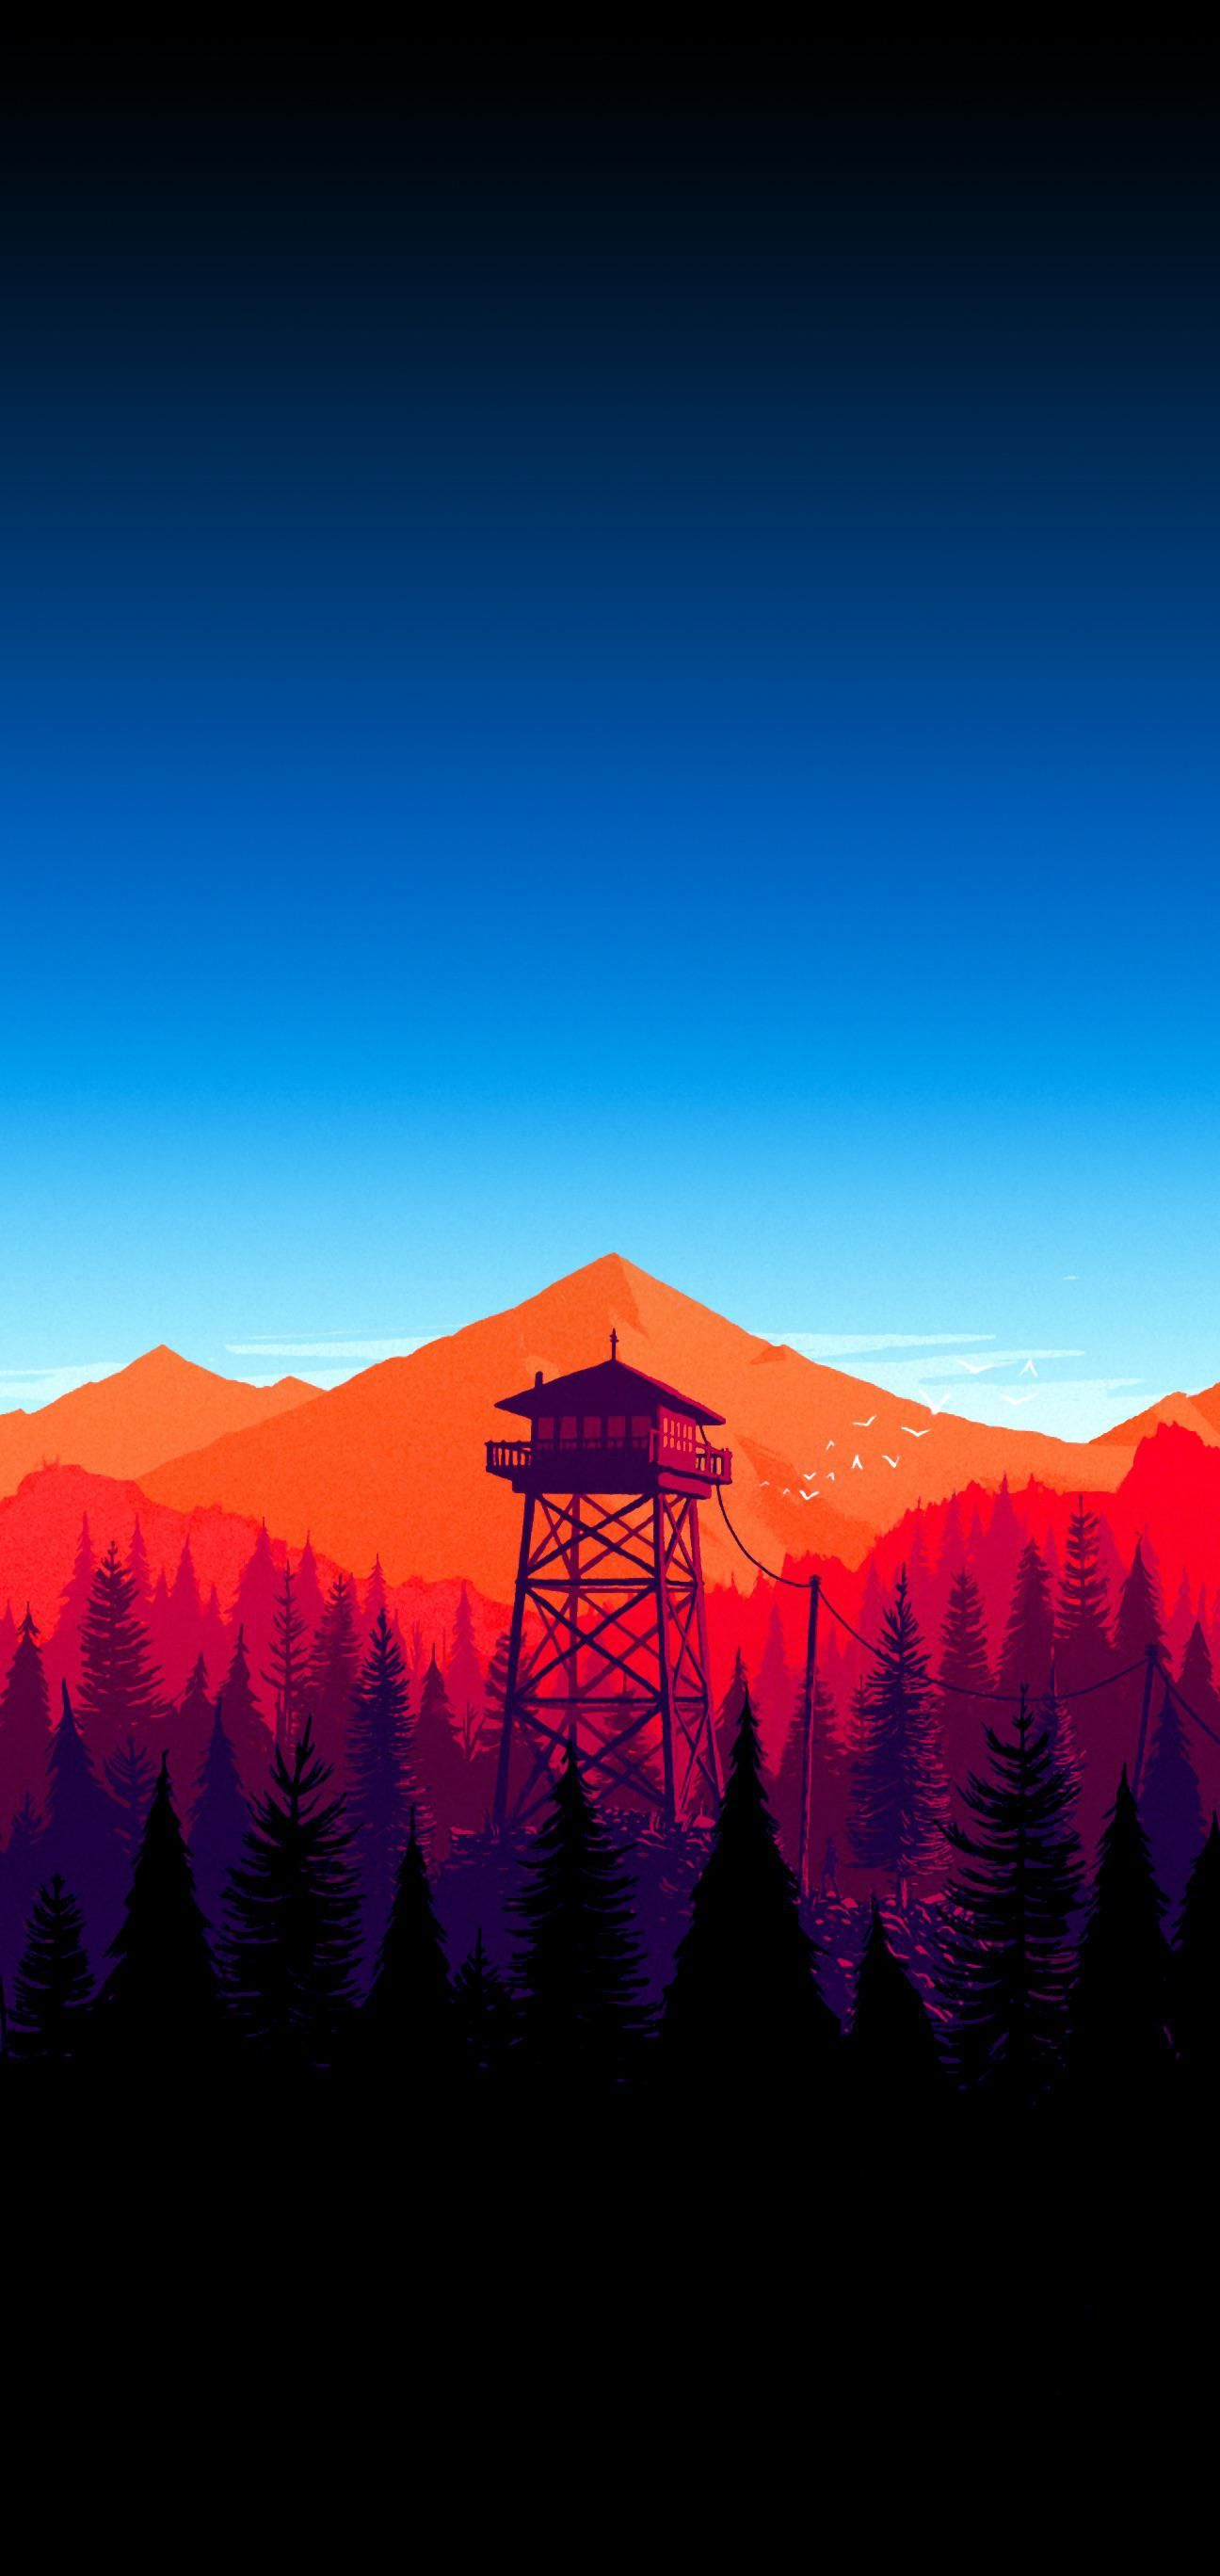 Firewatch Also Makes For An Awesome Wallpaper In 2020 Minimal Wallpaper Phone Wallpaper Mobile Wallpaper